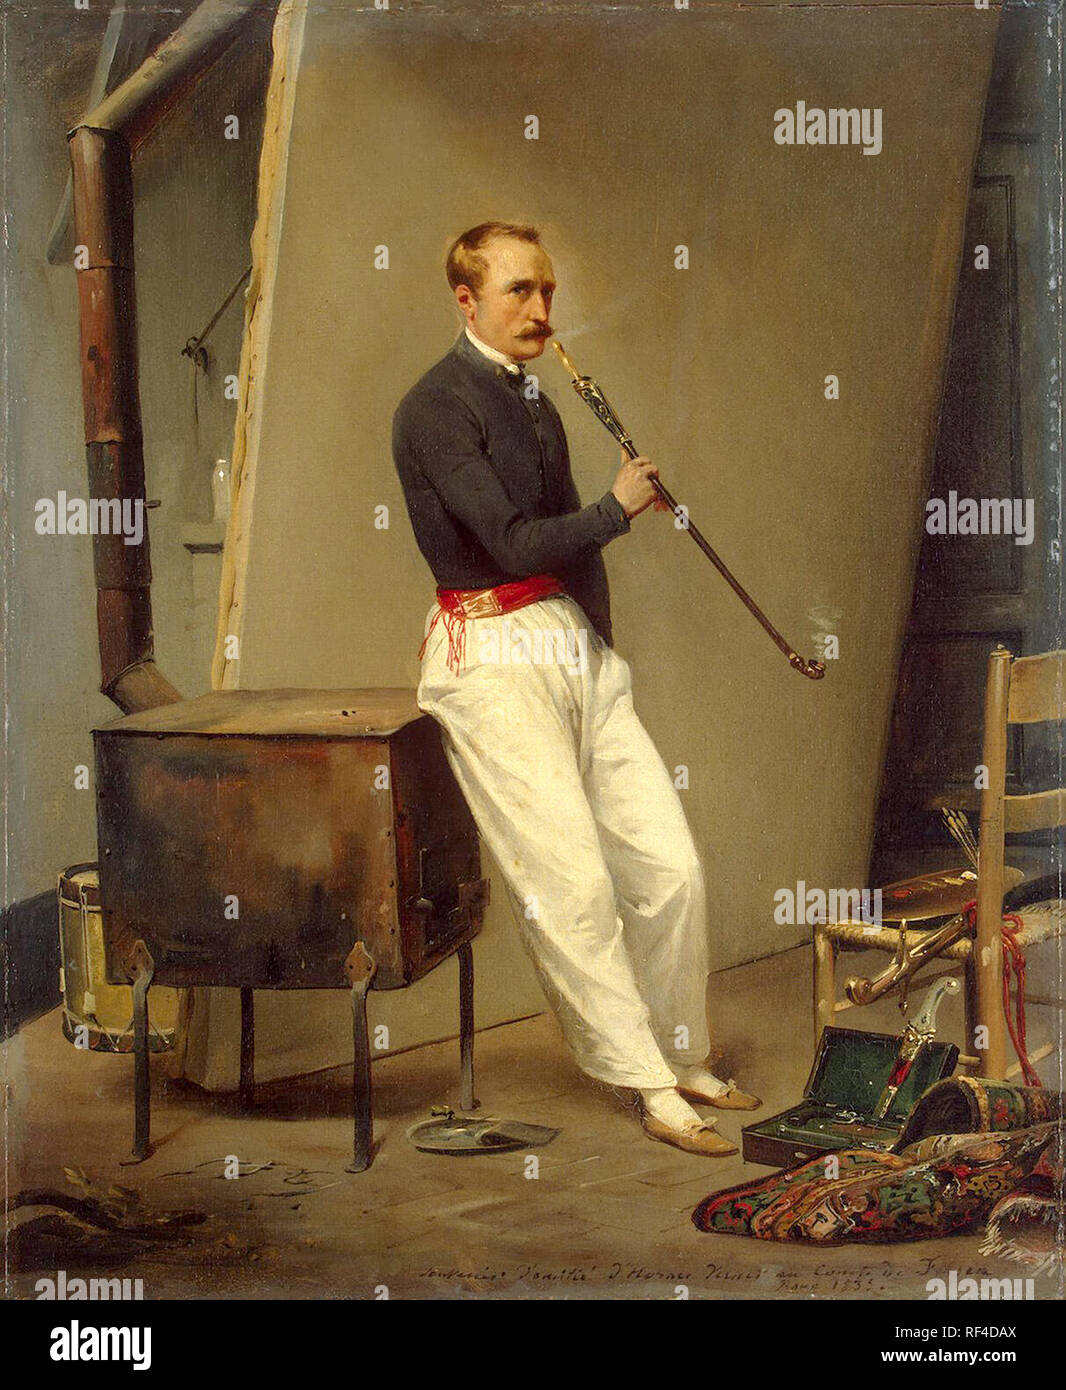 Horace Vernet, Self-Portrait with Pipe, 1835. Émile Jean-Horace Vernet (1789 – 1863) French painter - Stock Image